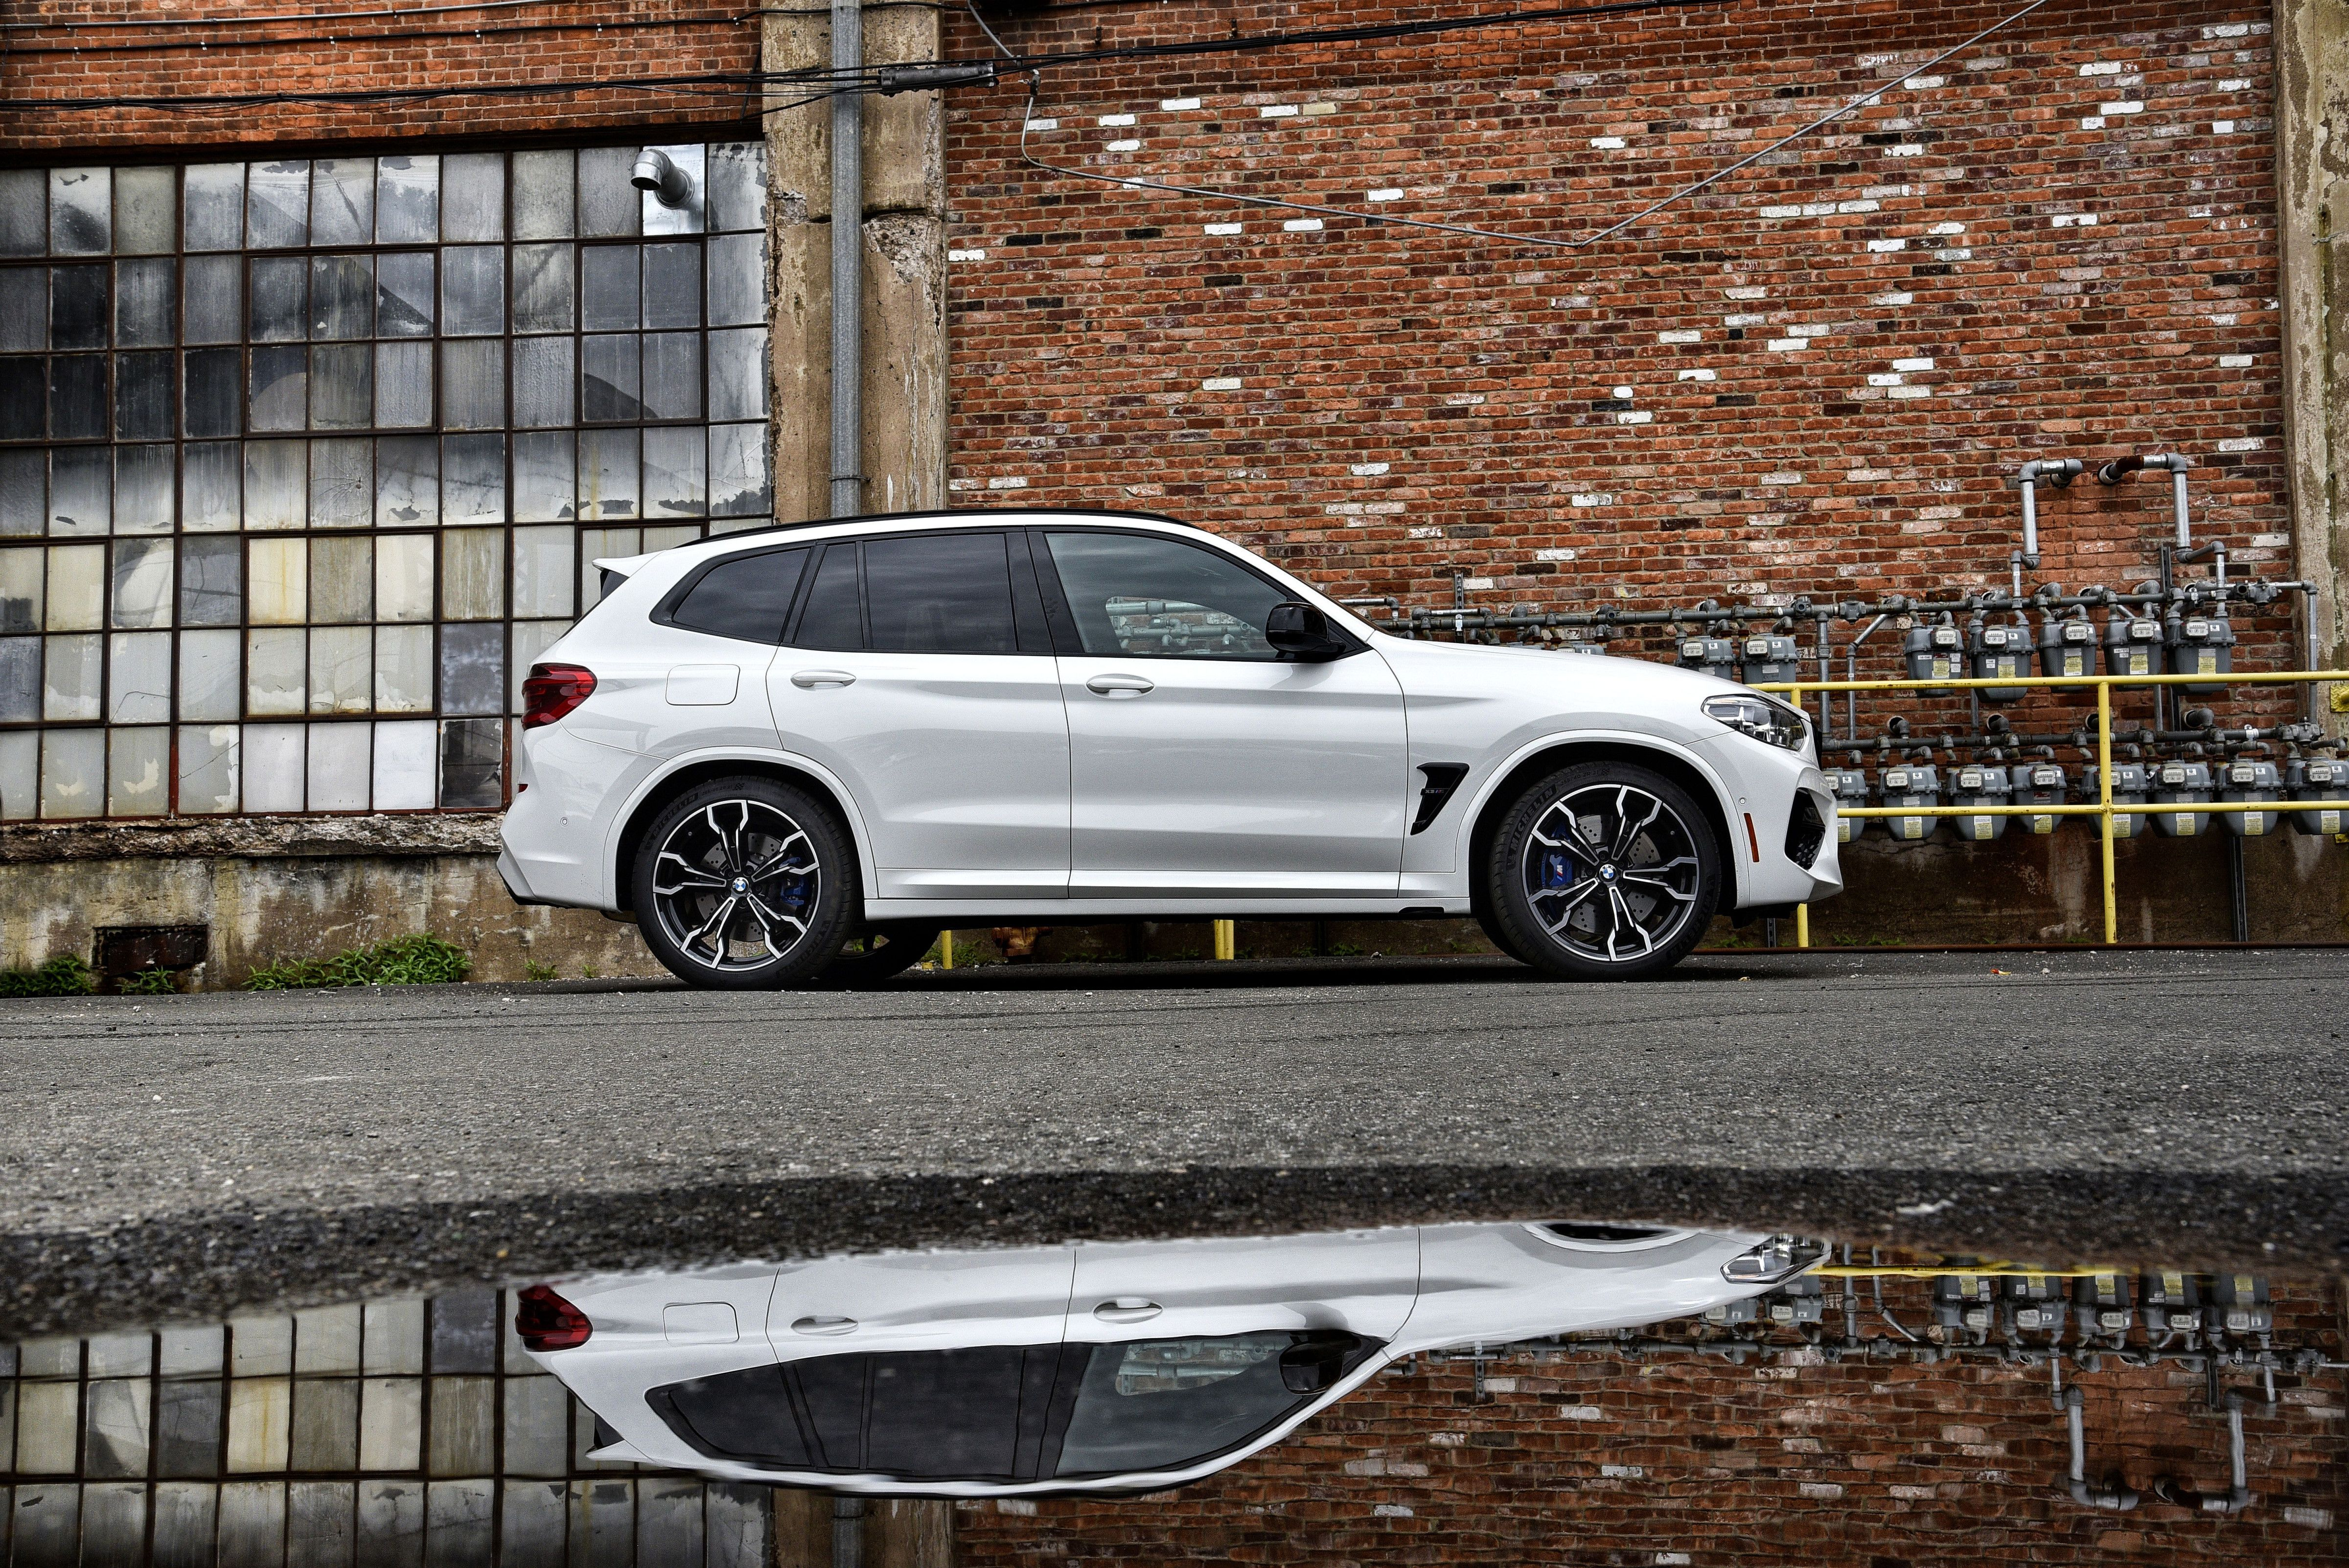 Bmw F97 X3m Sav Competition Mpower Mperformance Xdrive Sheerdrivingpleasure Offroad Outdoor Outside Tuning Badass Pro Bmw Bmw X3 New Bmw X3